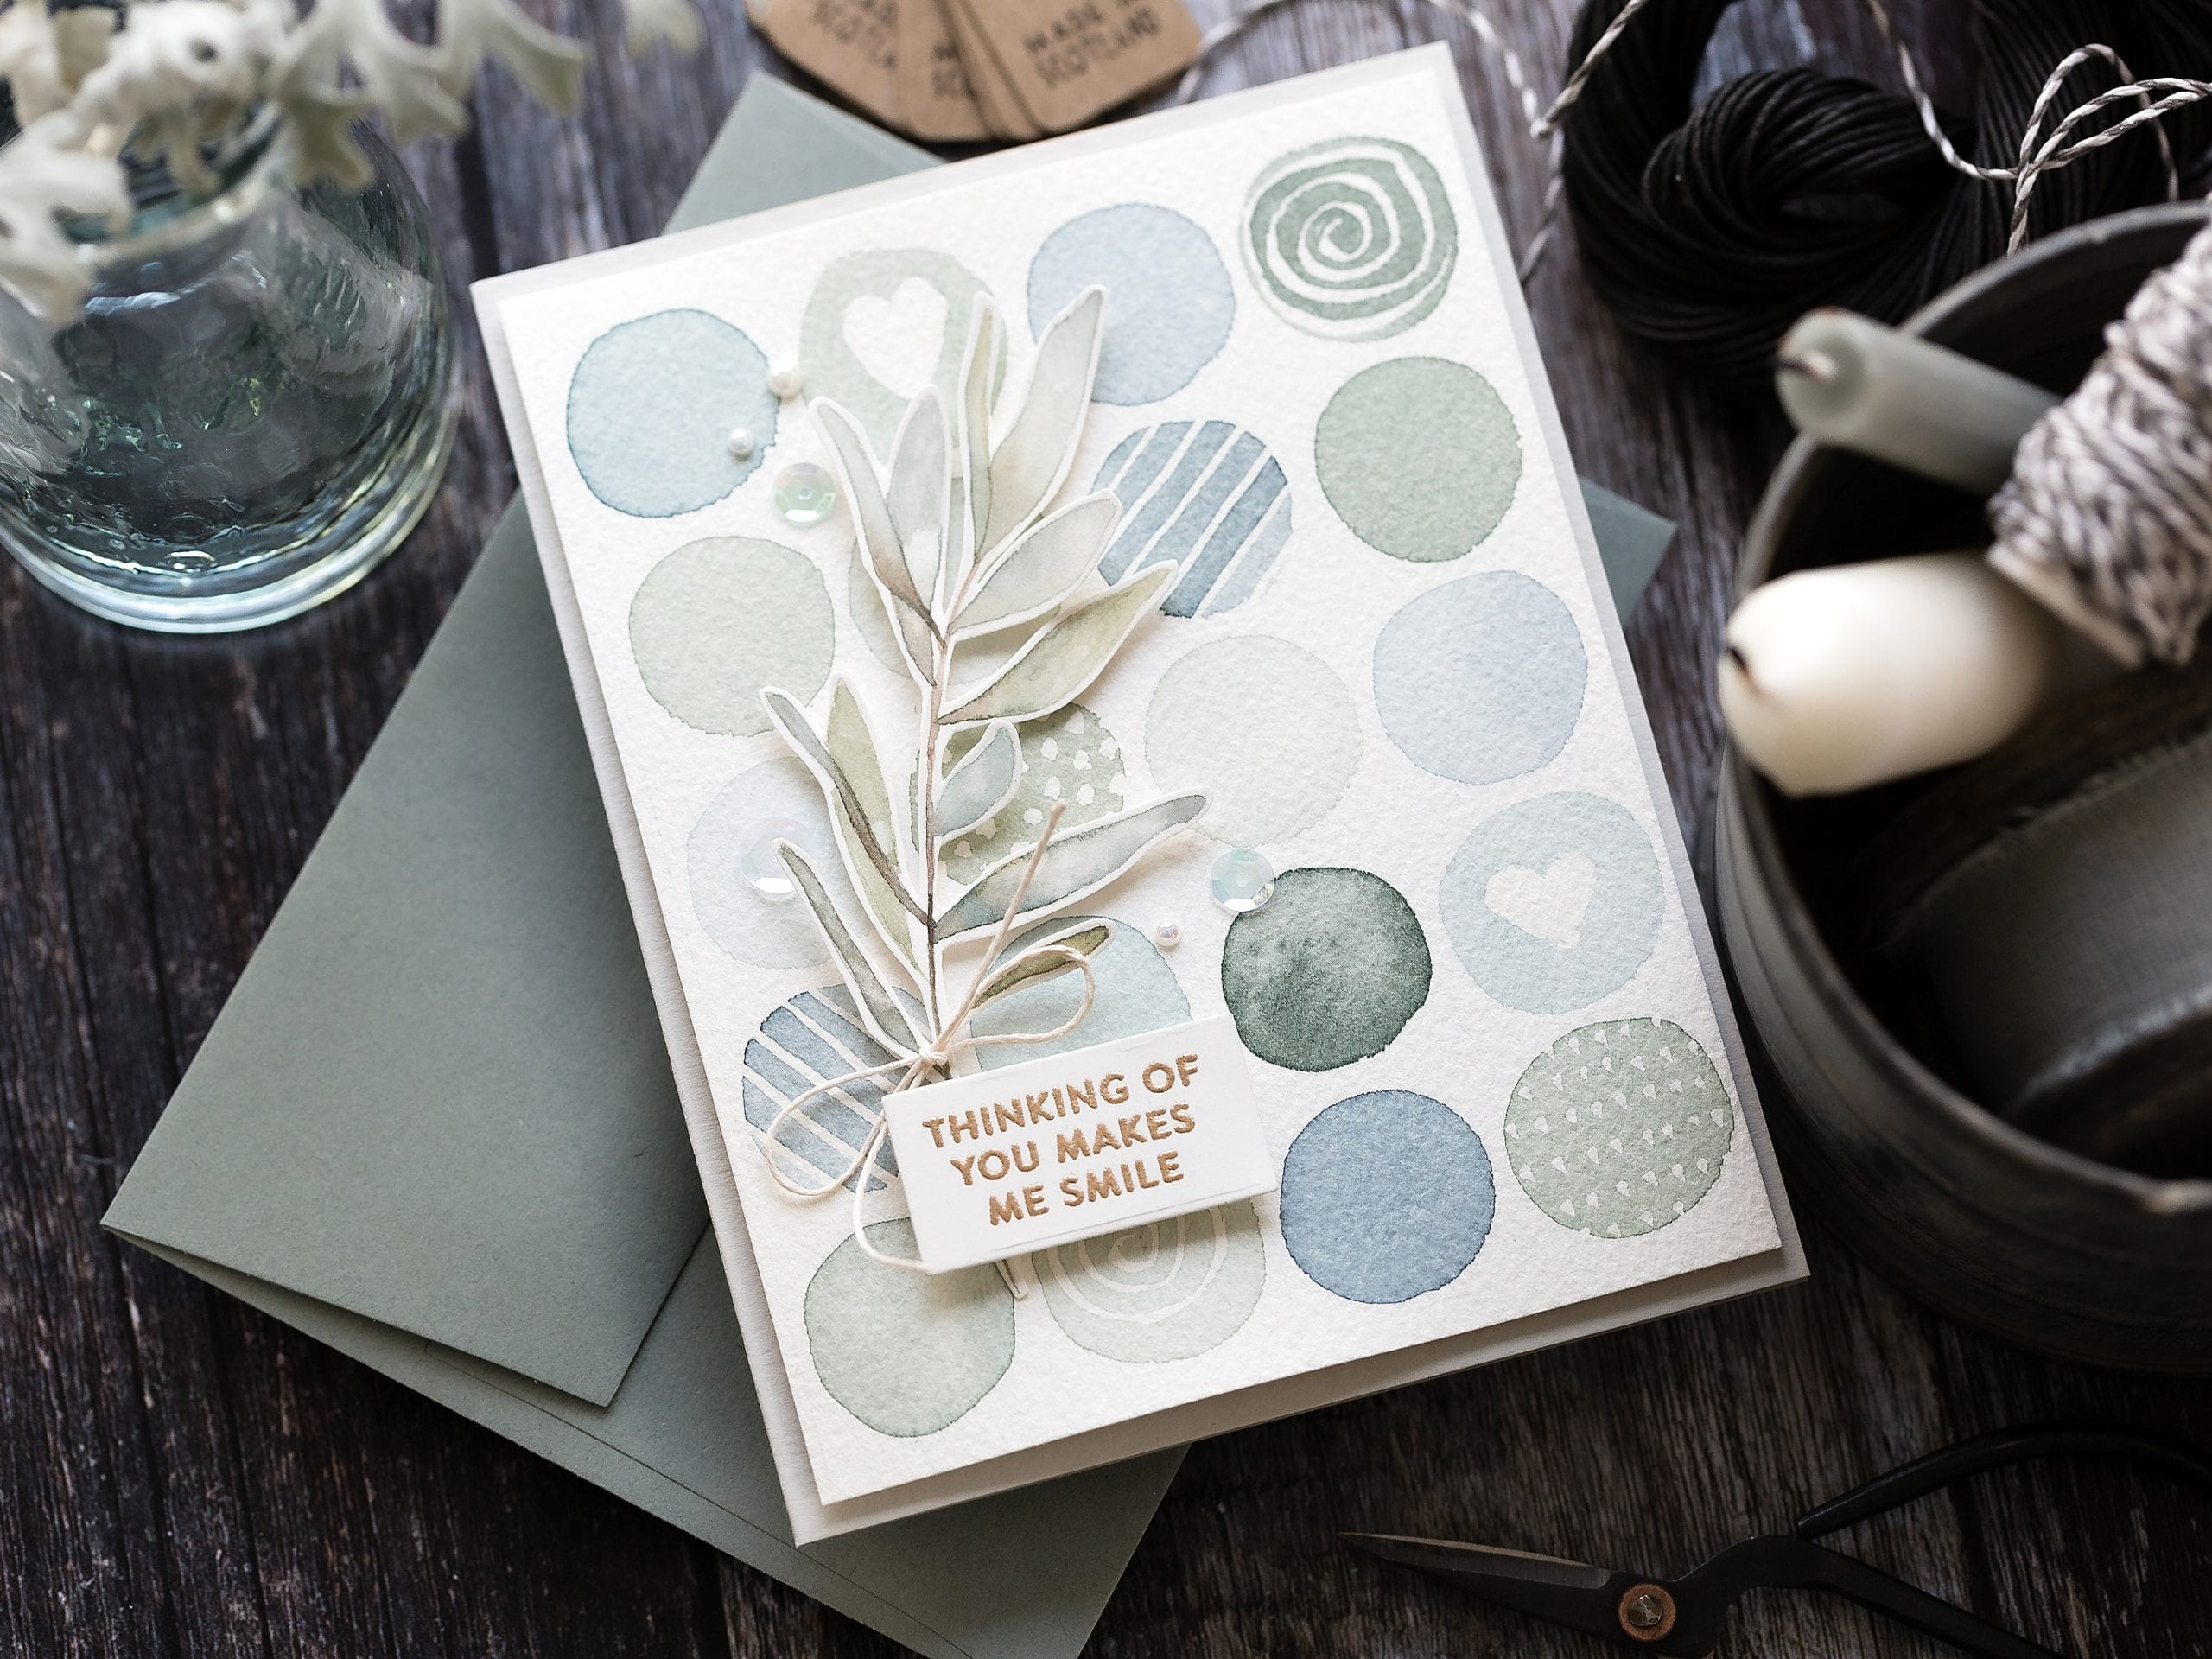 Easy watercolour background a soft subtle blues and greens grid of circles. Handmade card by Debby Hughes using supplies from Simon Says Stamp #handmade #homemade #watercolor